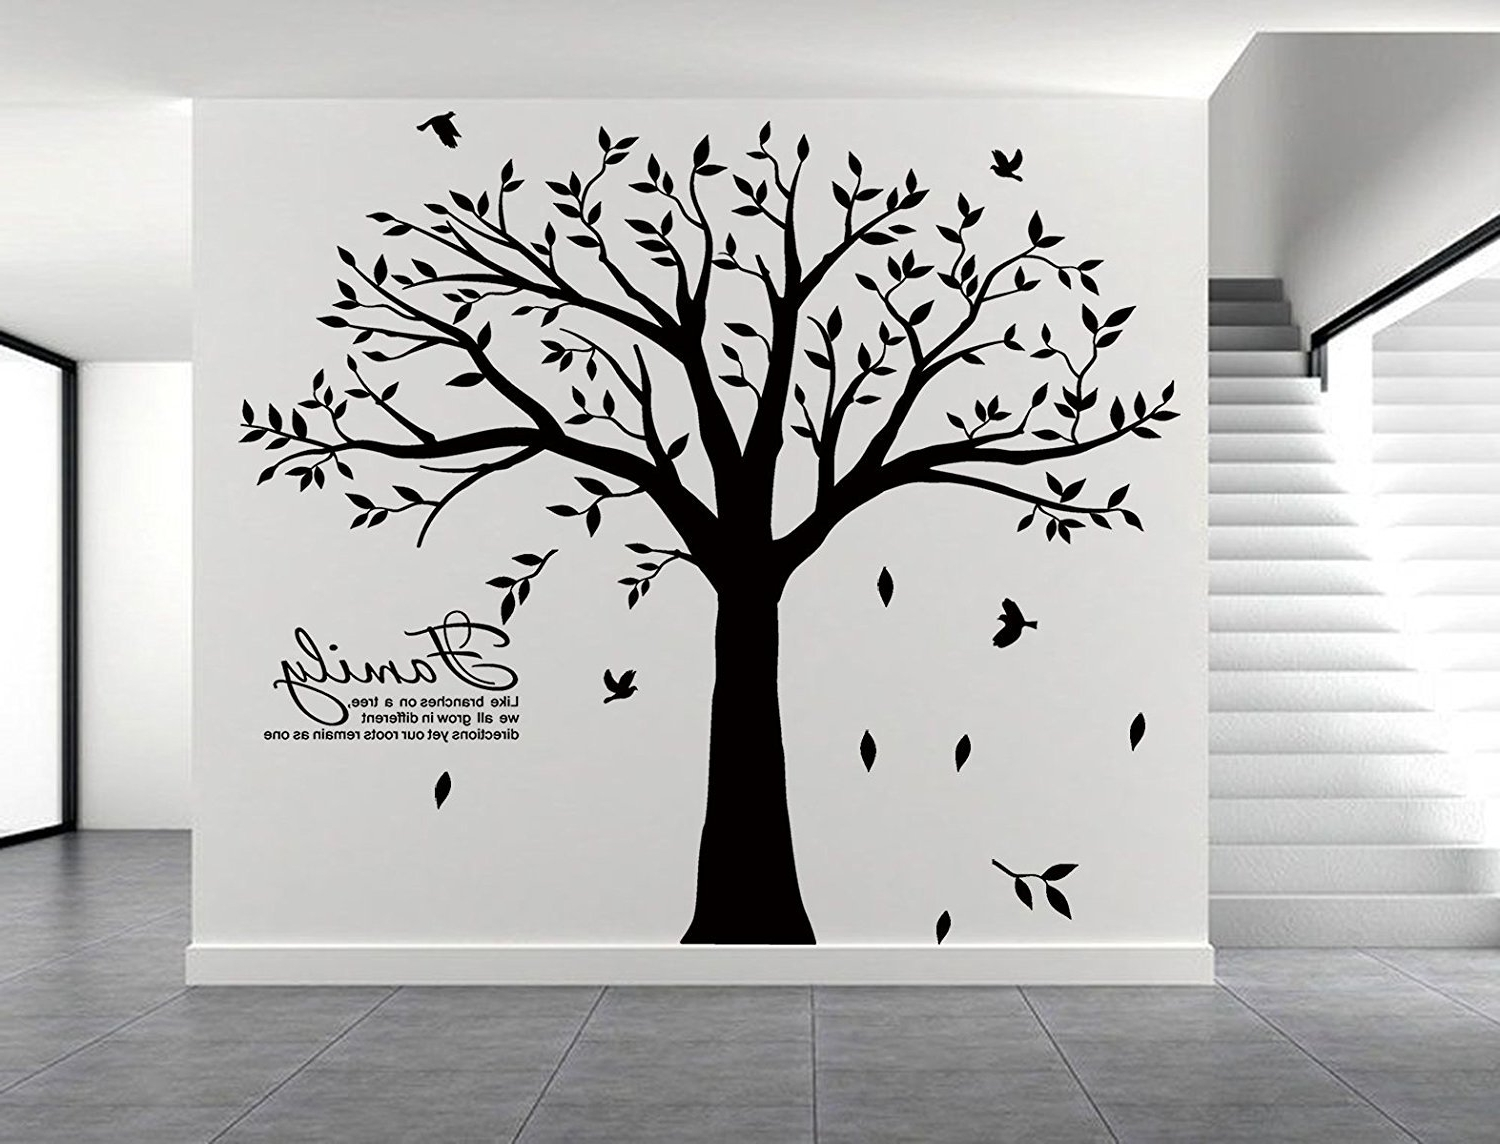 New Family Tree Wall Decal Vinyl Stickers Living Room Home Decor Intended For Recent Family Tree Wall Art (View 12 of 15)